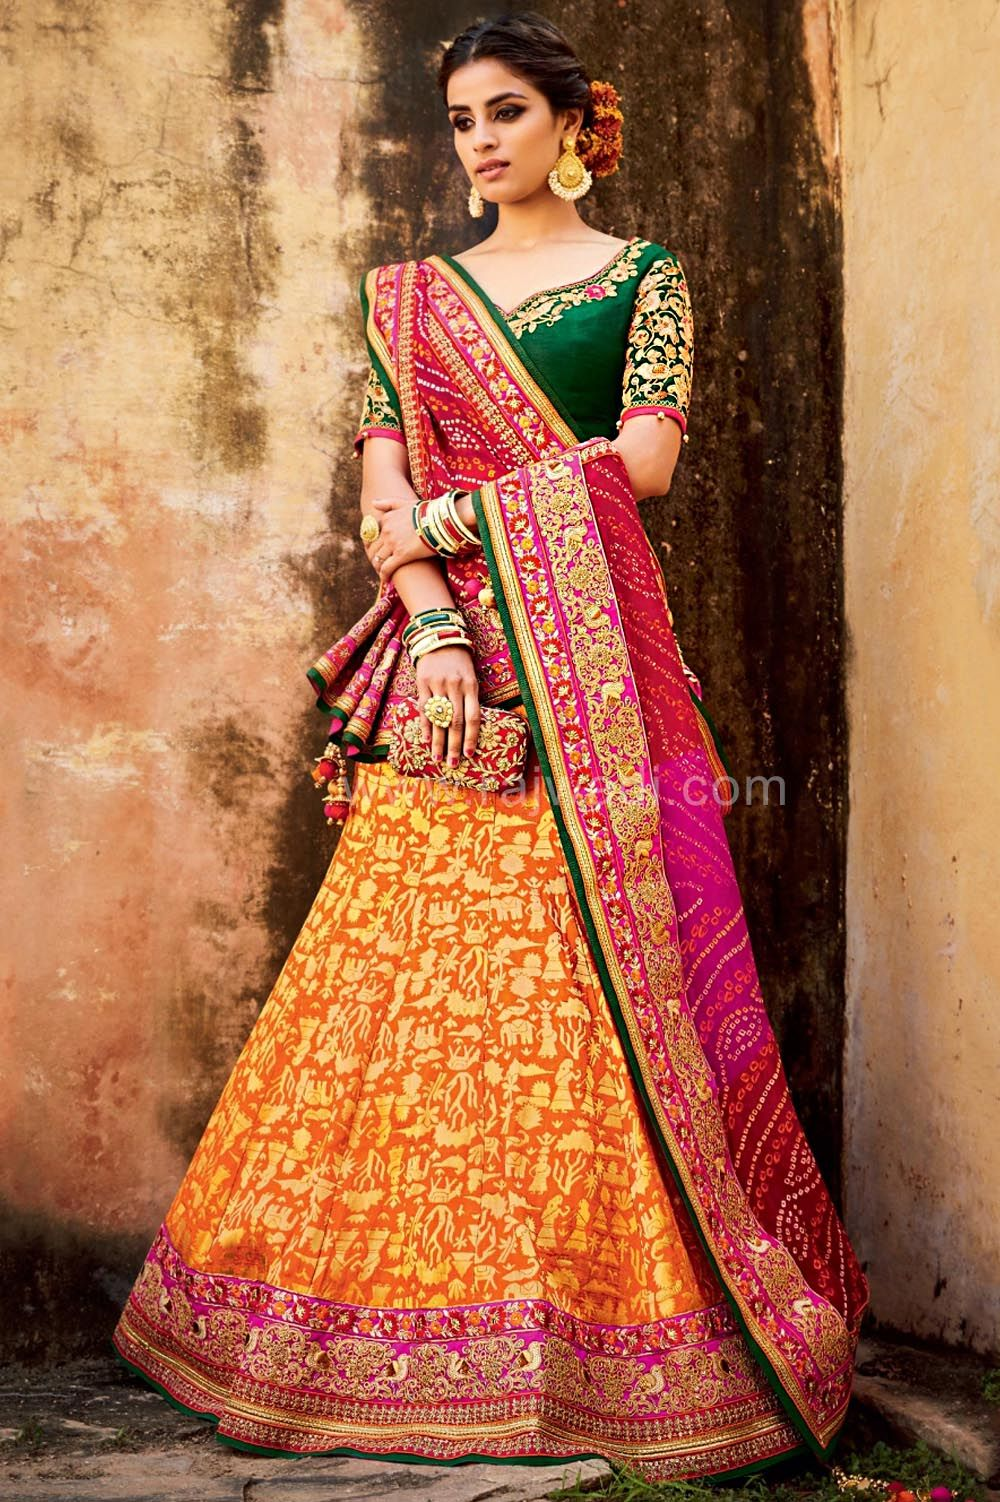 111dfda373 #rajwadi #lehengacholi #weddingseason #weddingdress #embroidery #lehenga # ethnicwear #bridalwear #designerwear #onlineshopping